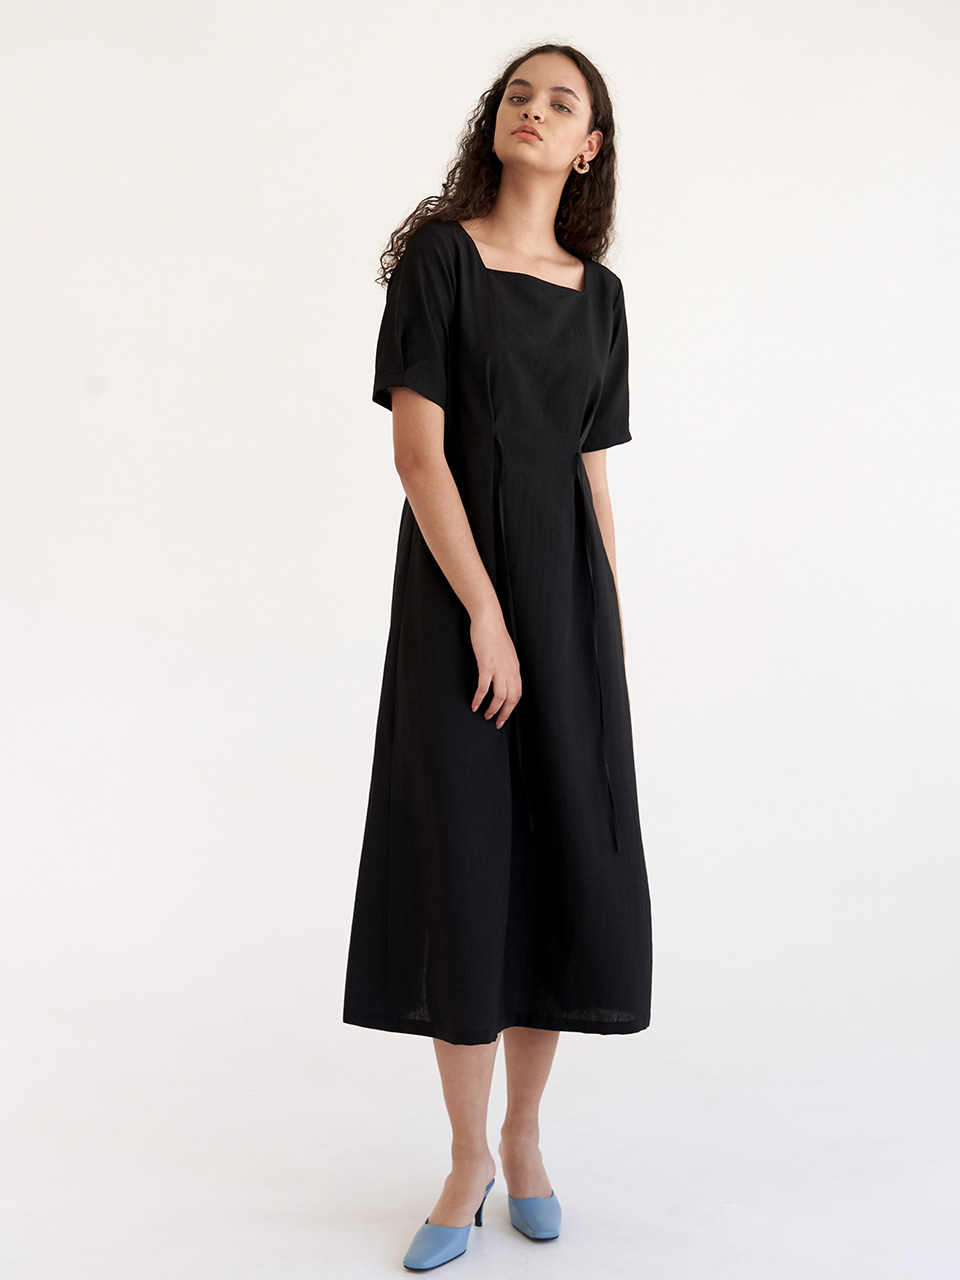 Sqaure Tuck Dress - Black